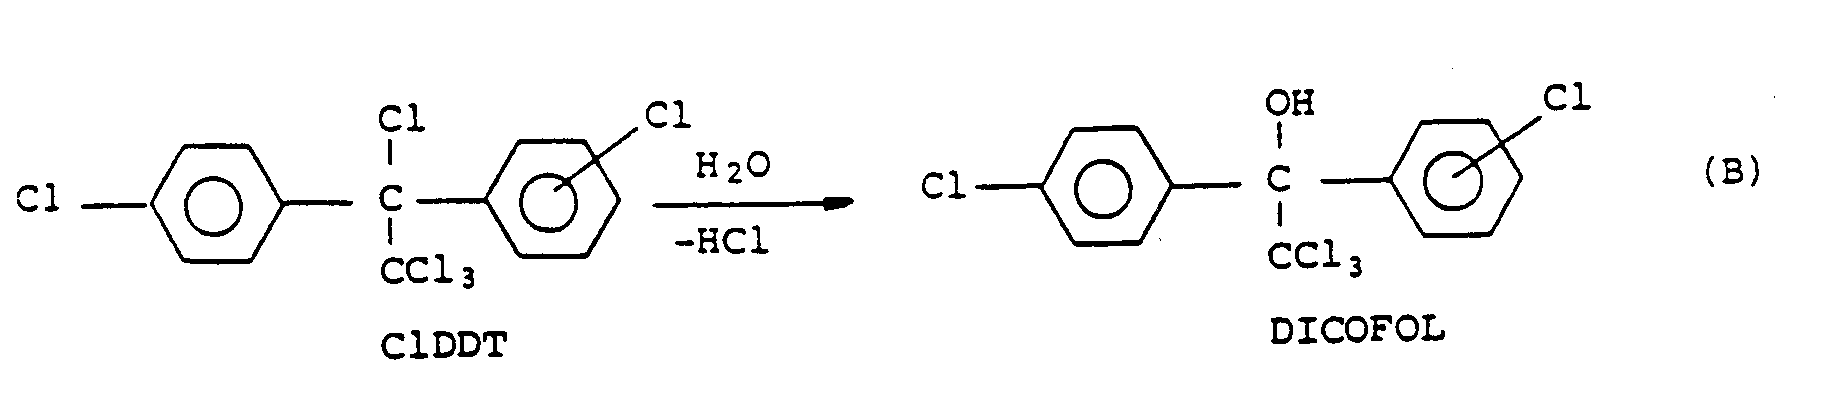 EP0409689B1 - A process for the purification of 1,1-bis(4